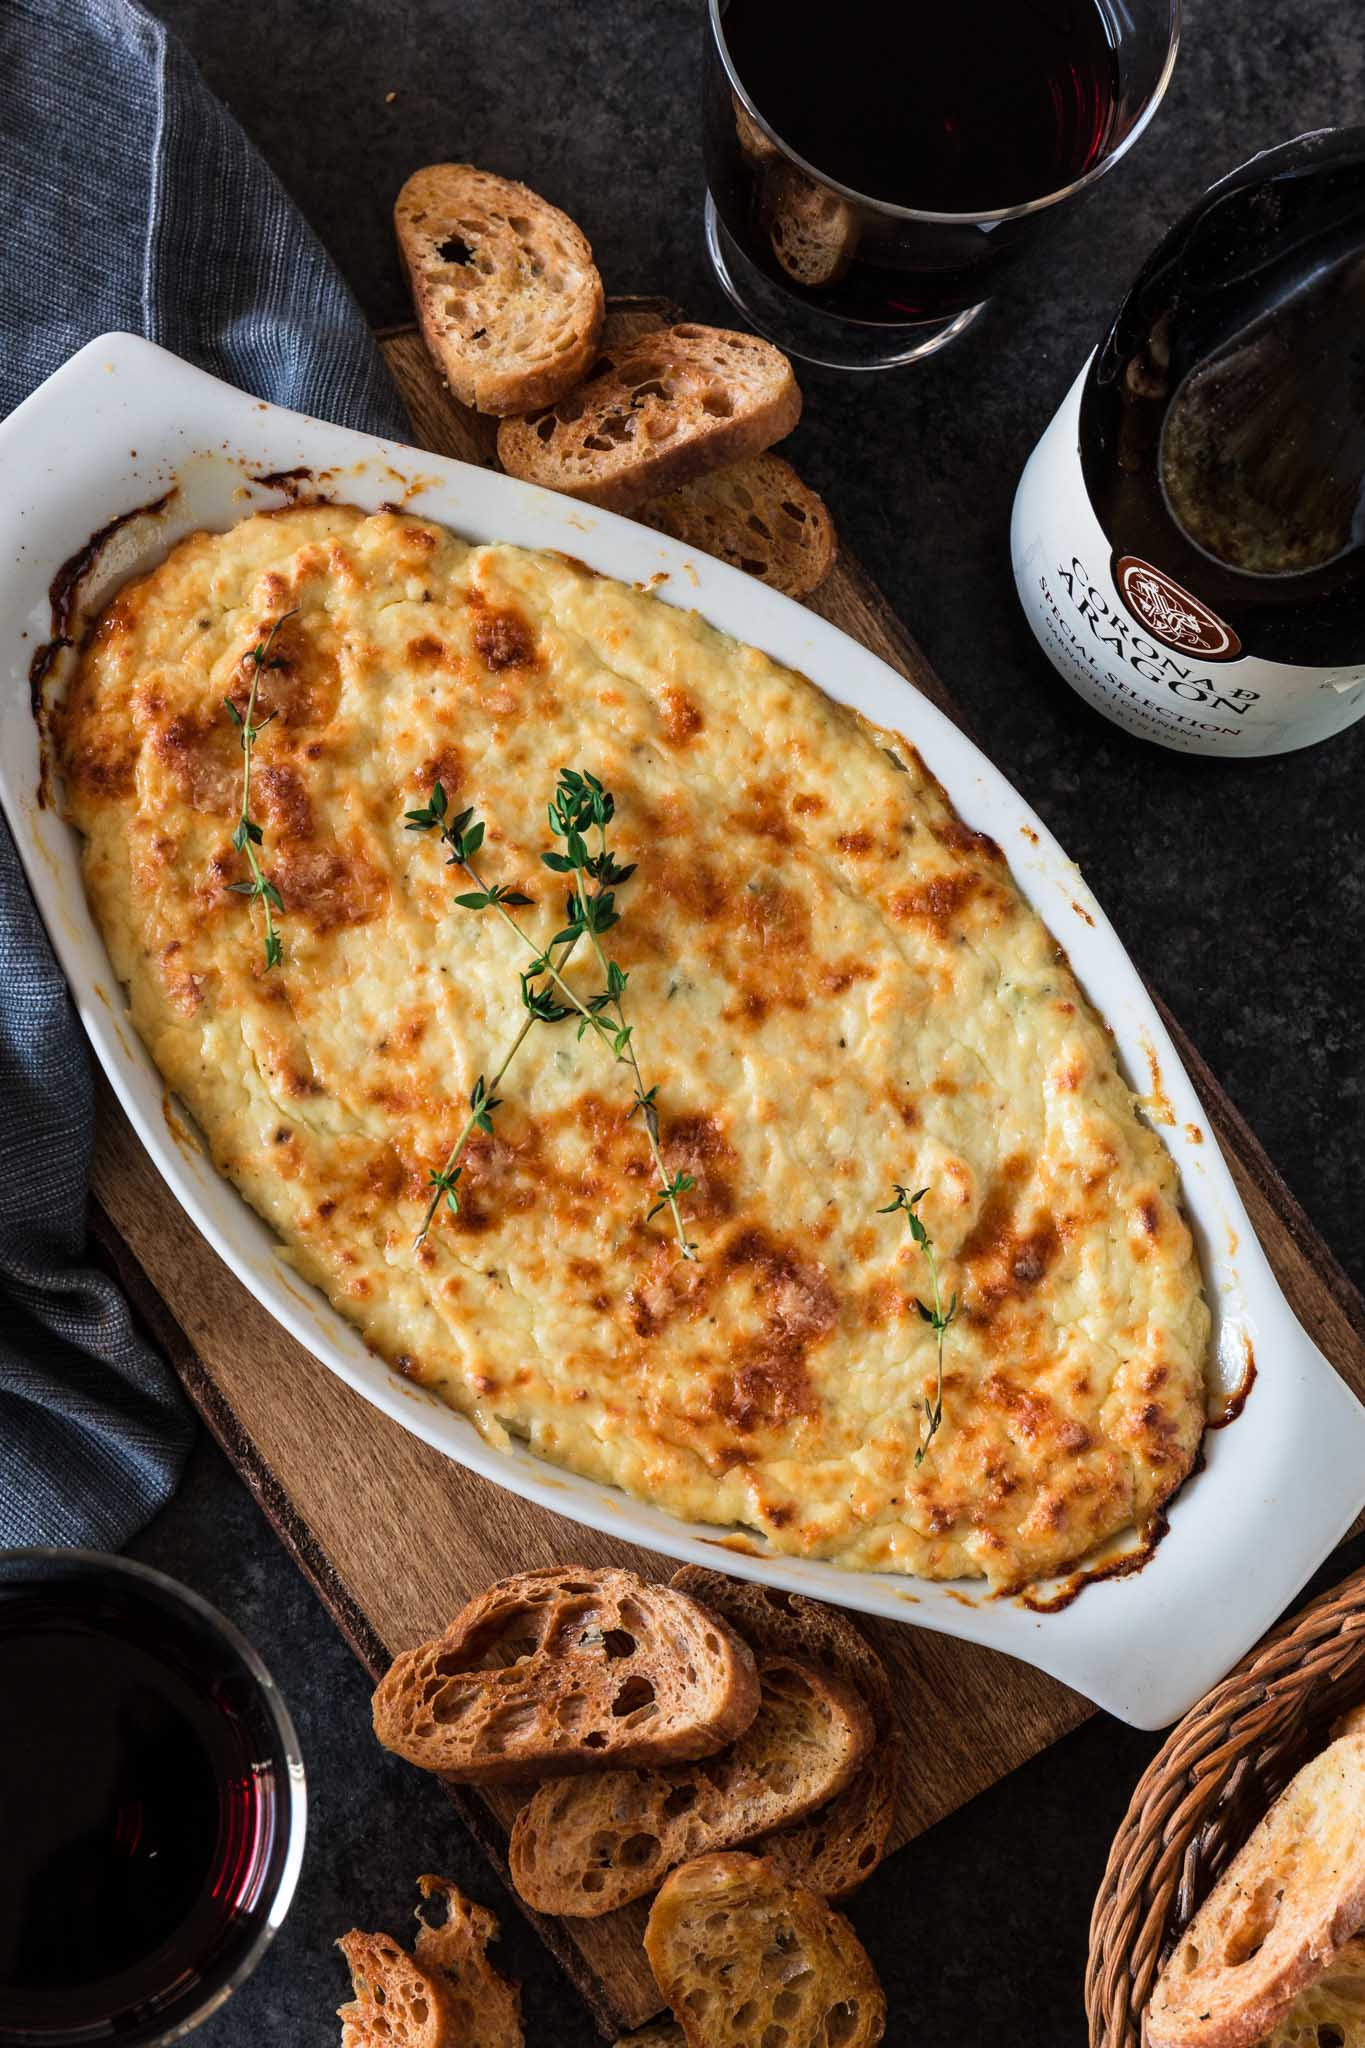 Roasted Garlic Baked Ricotta | www.oliviascuisine.com | Simple, yes. Mediocre? Never! This hot, cheesy and garlicky dip is all you'd want in an appetizer. Make it this holiday season, serve with some good wine and get ready to be called The Entertaining Queen/King. (Recipe and food photography by @oliviascuisine.)